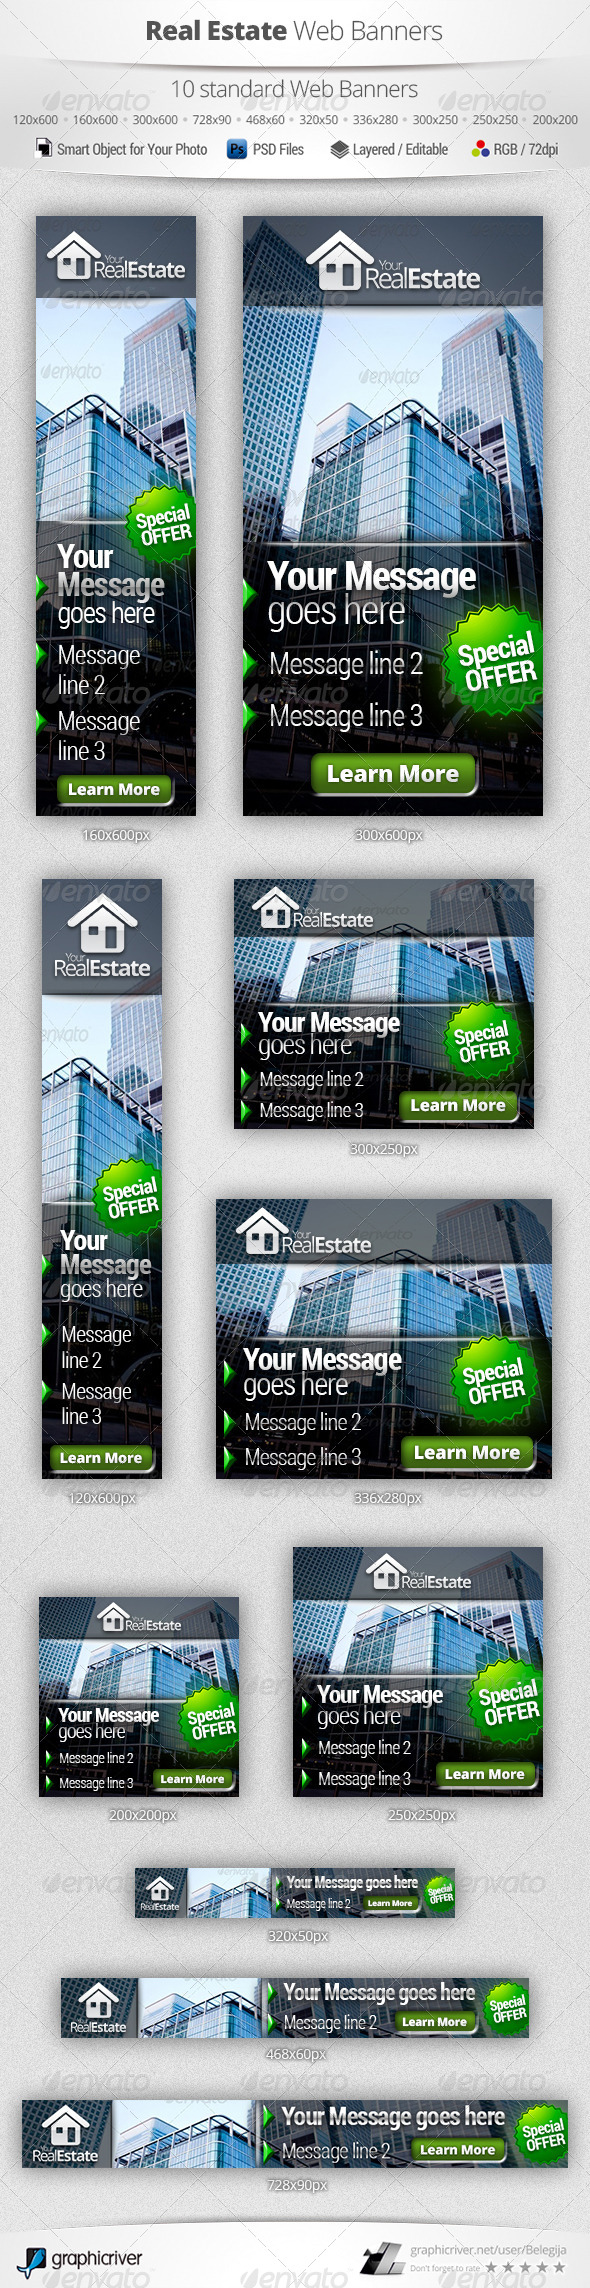 Real Estate Campaign Web Banners 3 | More Web banners, Banner ...